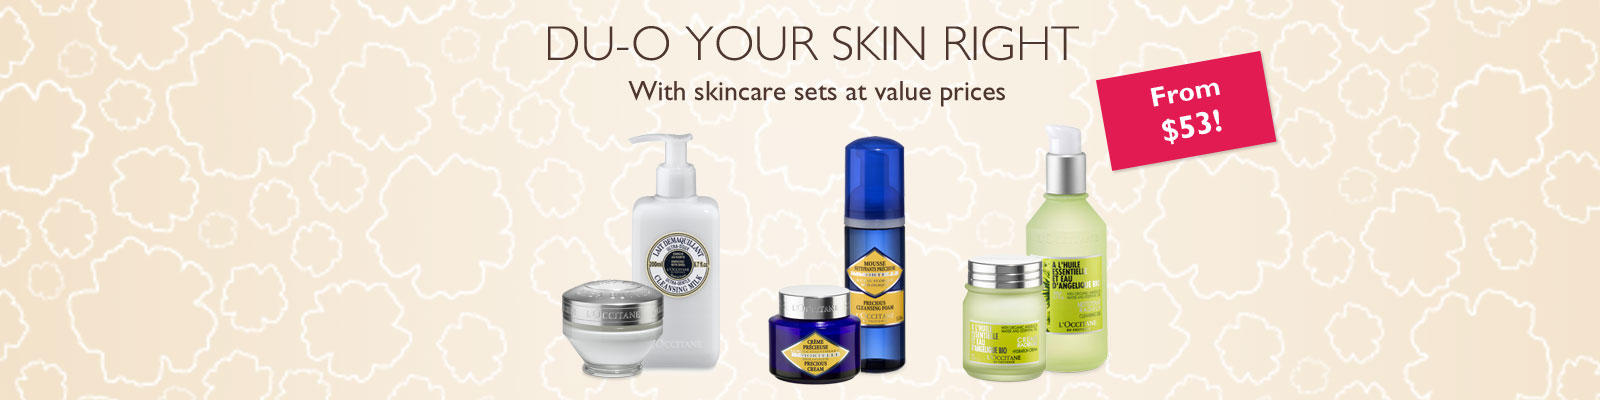 Du-O Your Skin Right!  With skincare sets at value prices